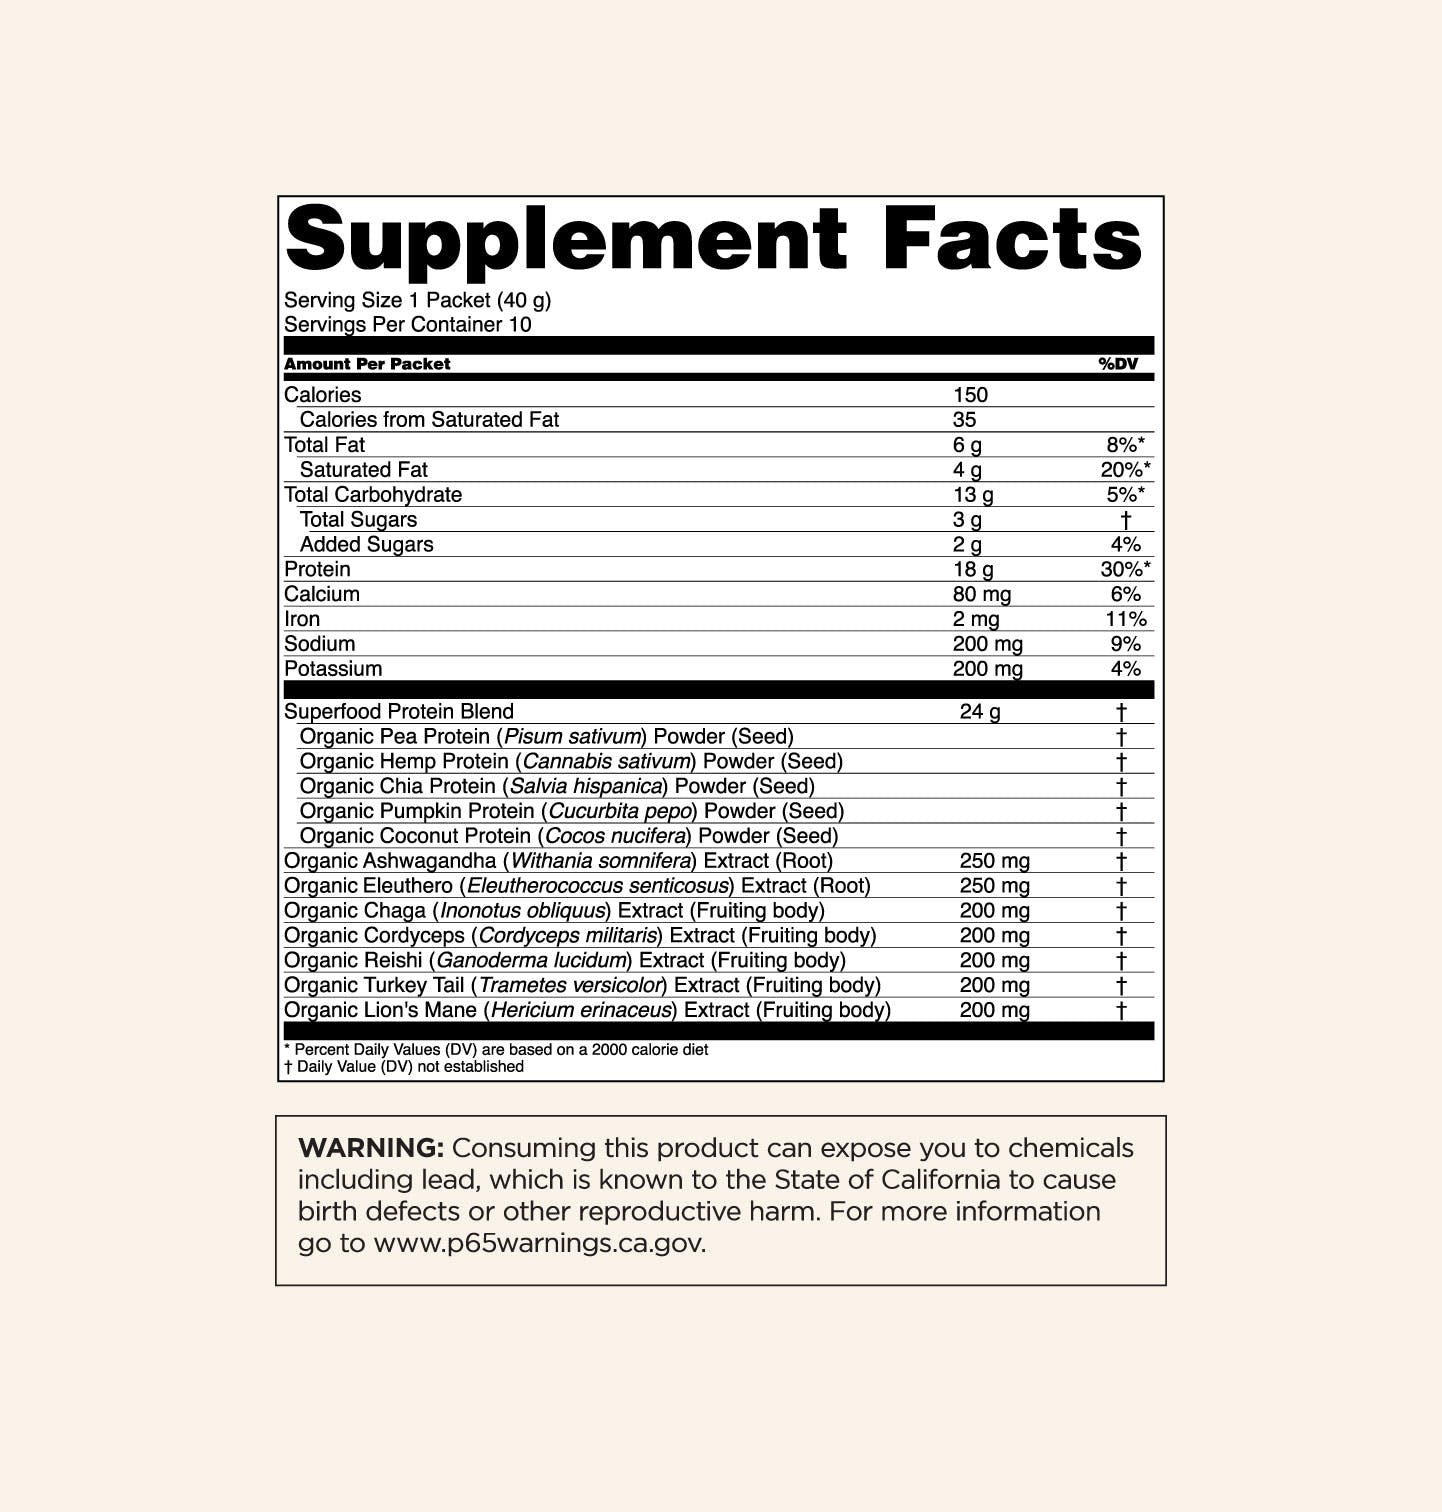 Creamy Cacao Supplements Facts Panel